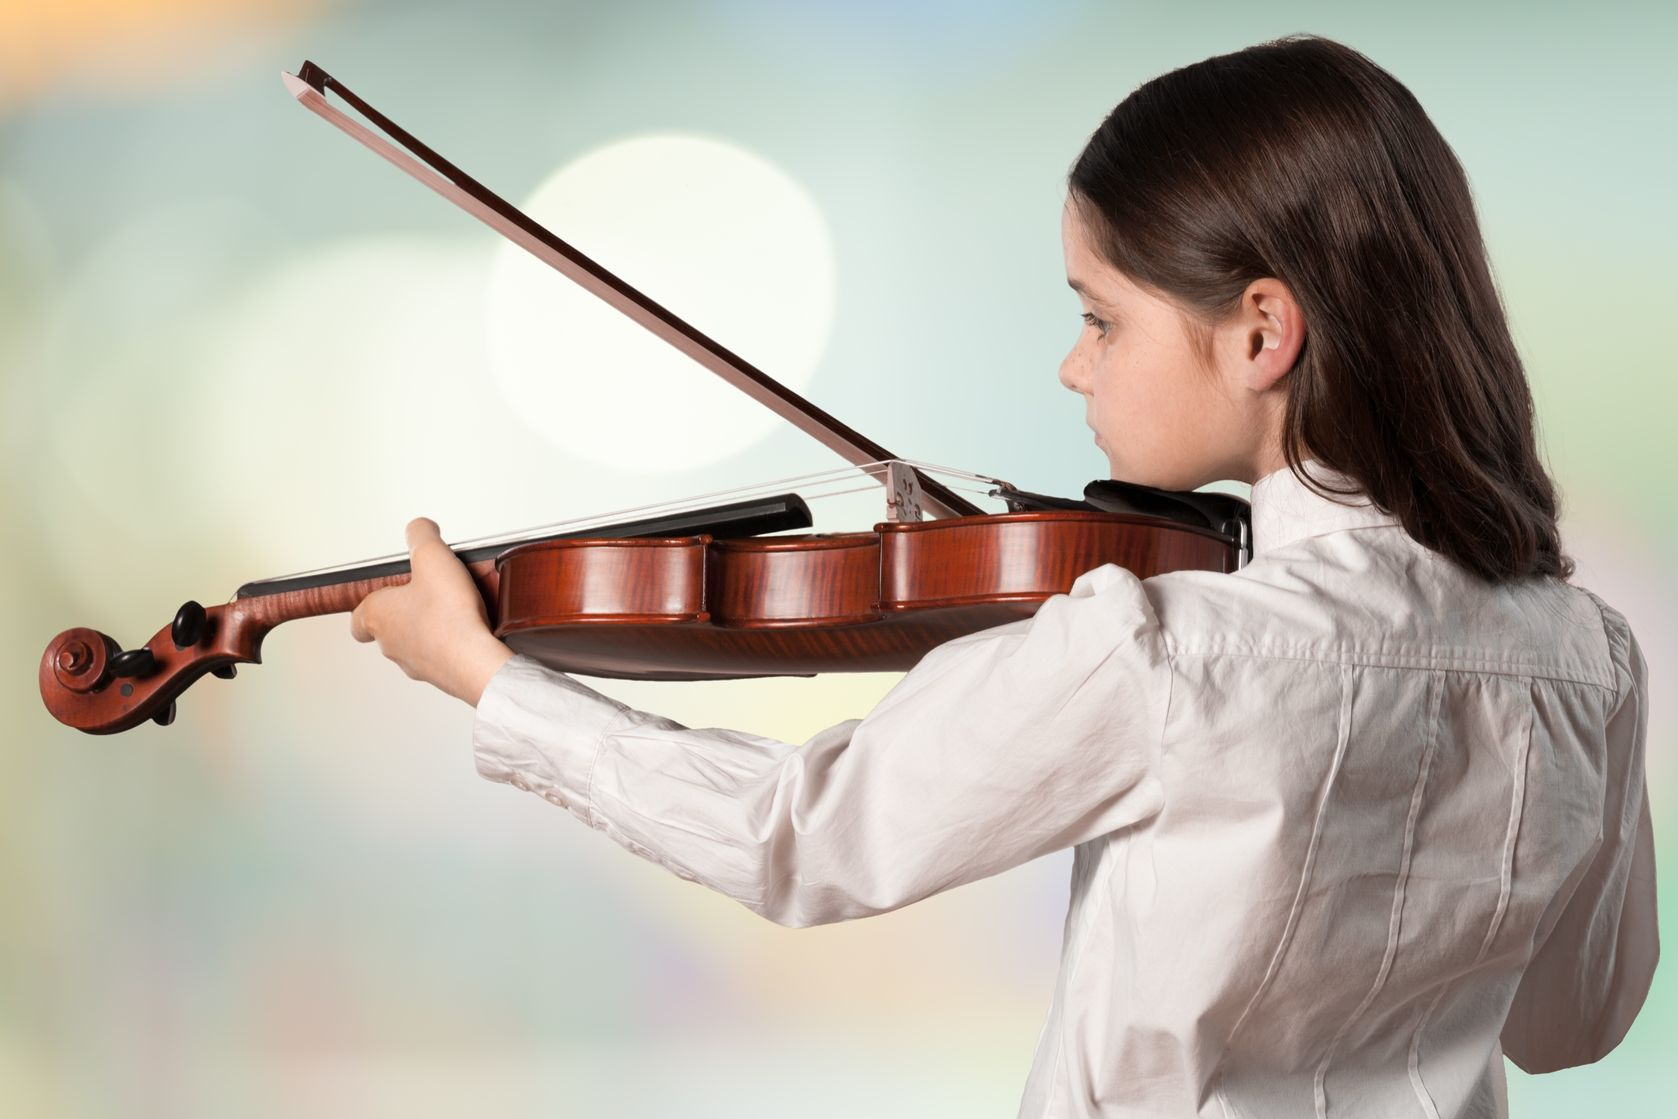 6 Best Kids' Violin (Must Read Reviews) For September 2019